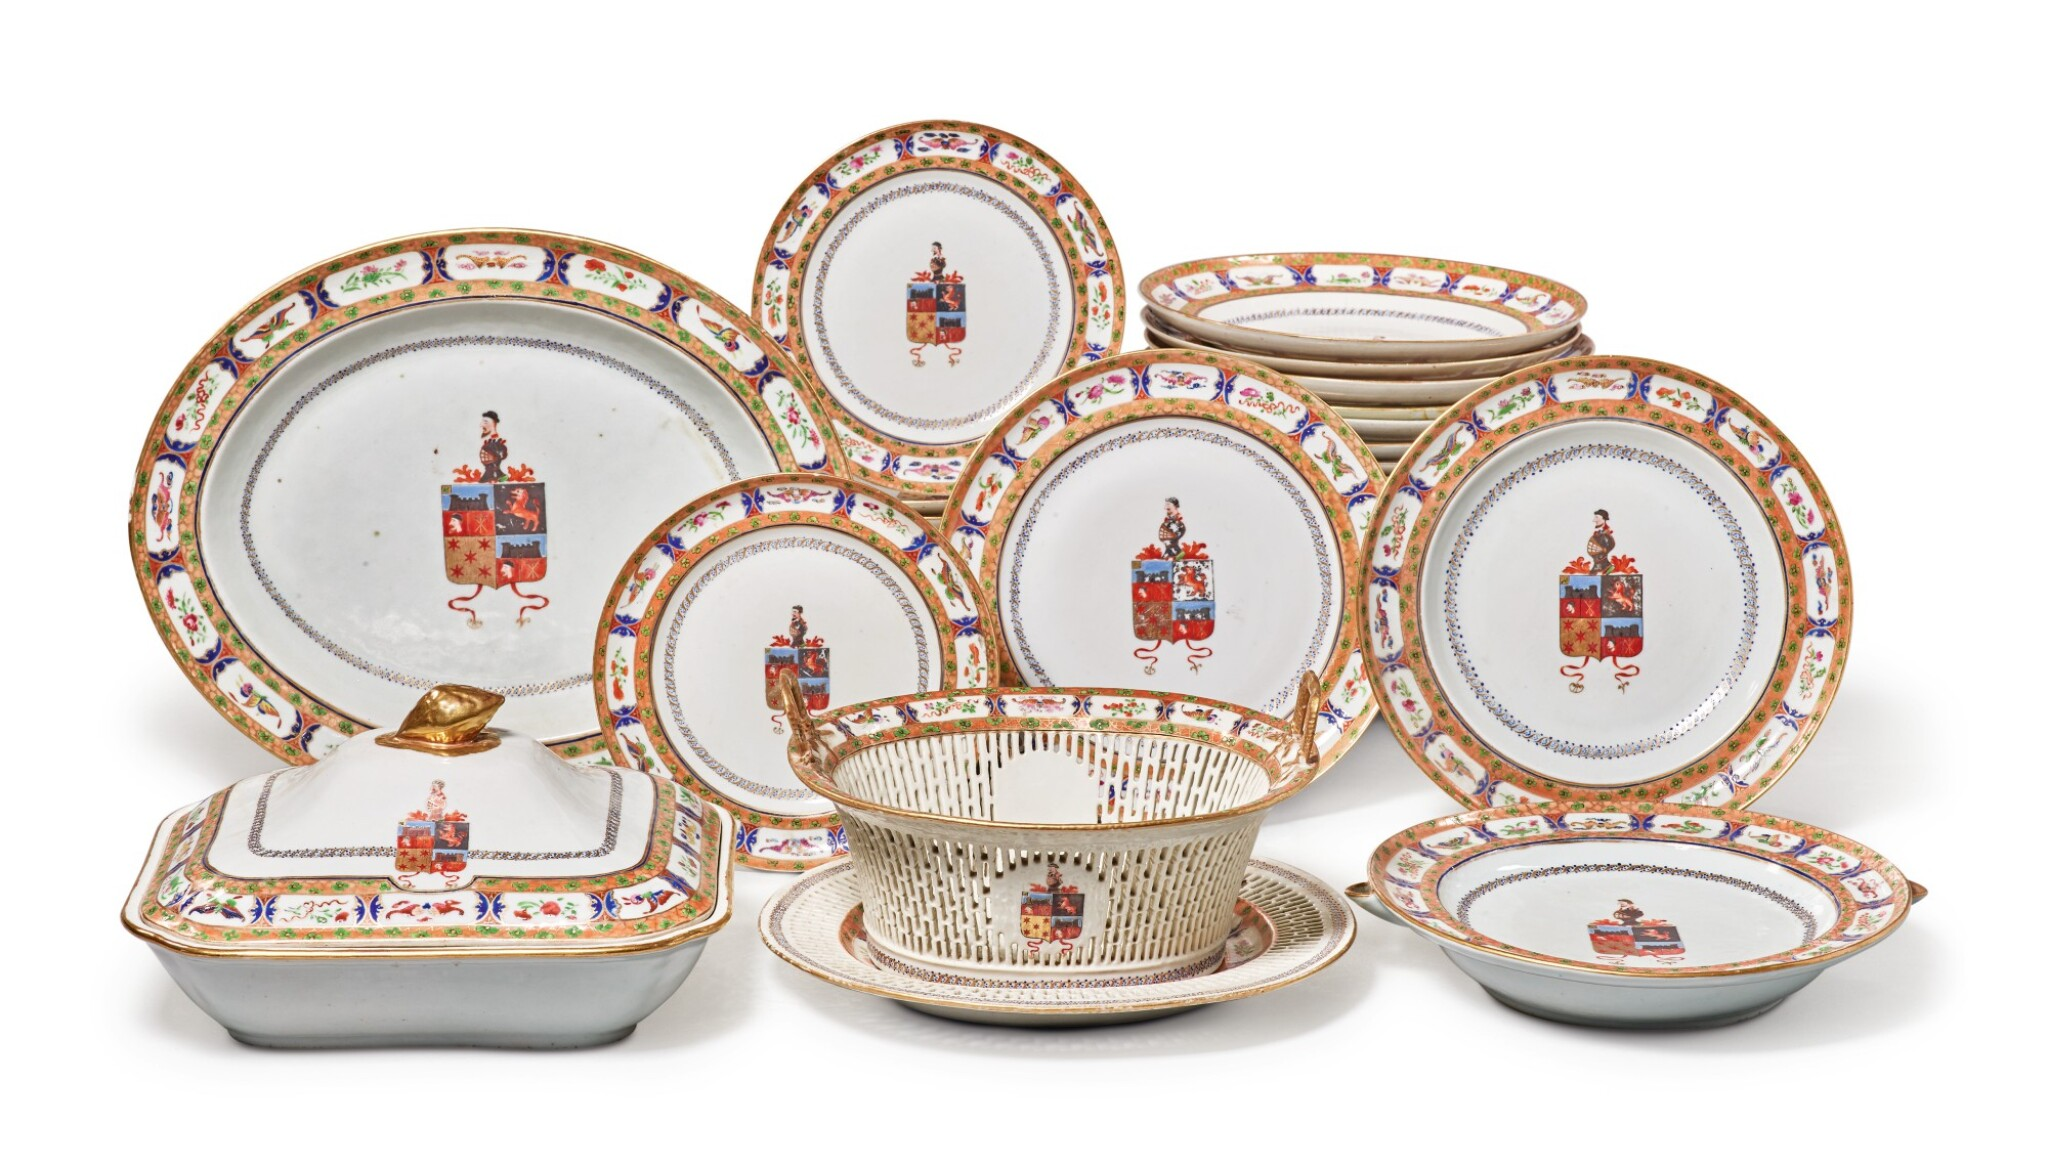 View full screen - View 1 of Lot 466. A Rare Chinese Export Armorial Part Dinner Service for the Portuguese Market, Qing Dynasty, Jiaqing/ Daoguang Period, circa 1820 | 清嘉慶 / 道光  約1820年  粉彩紋章圖餐具組.